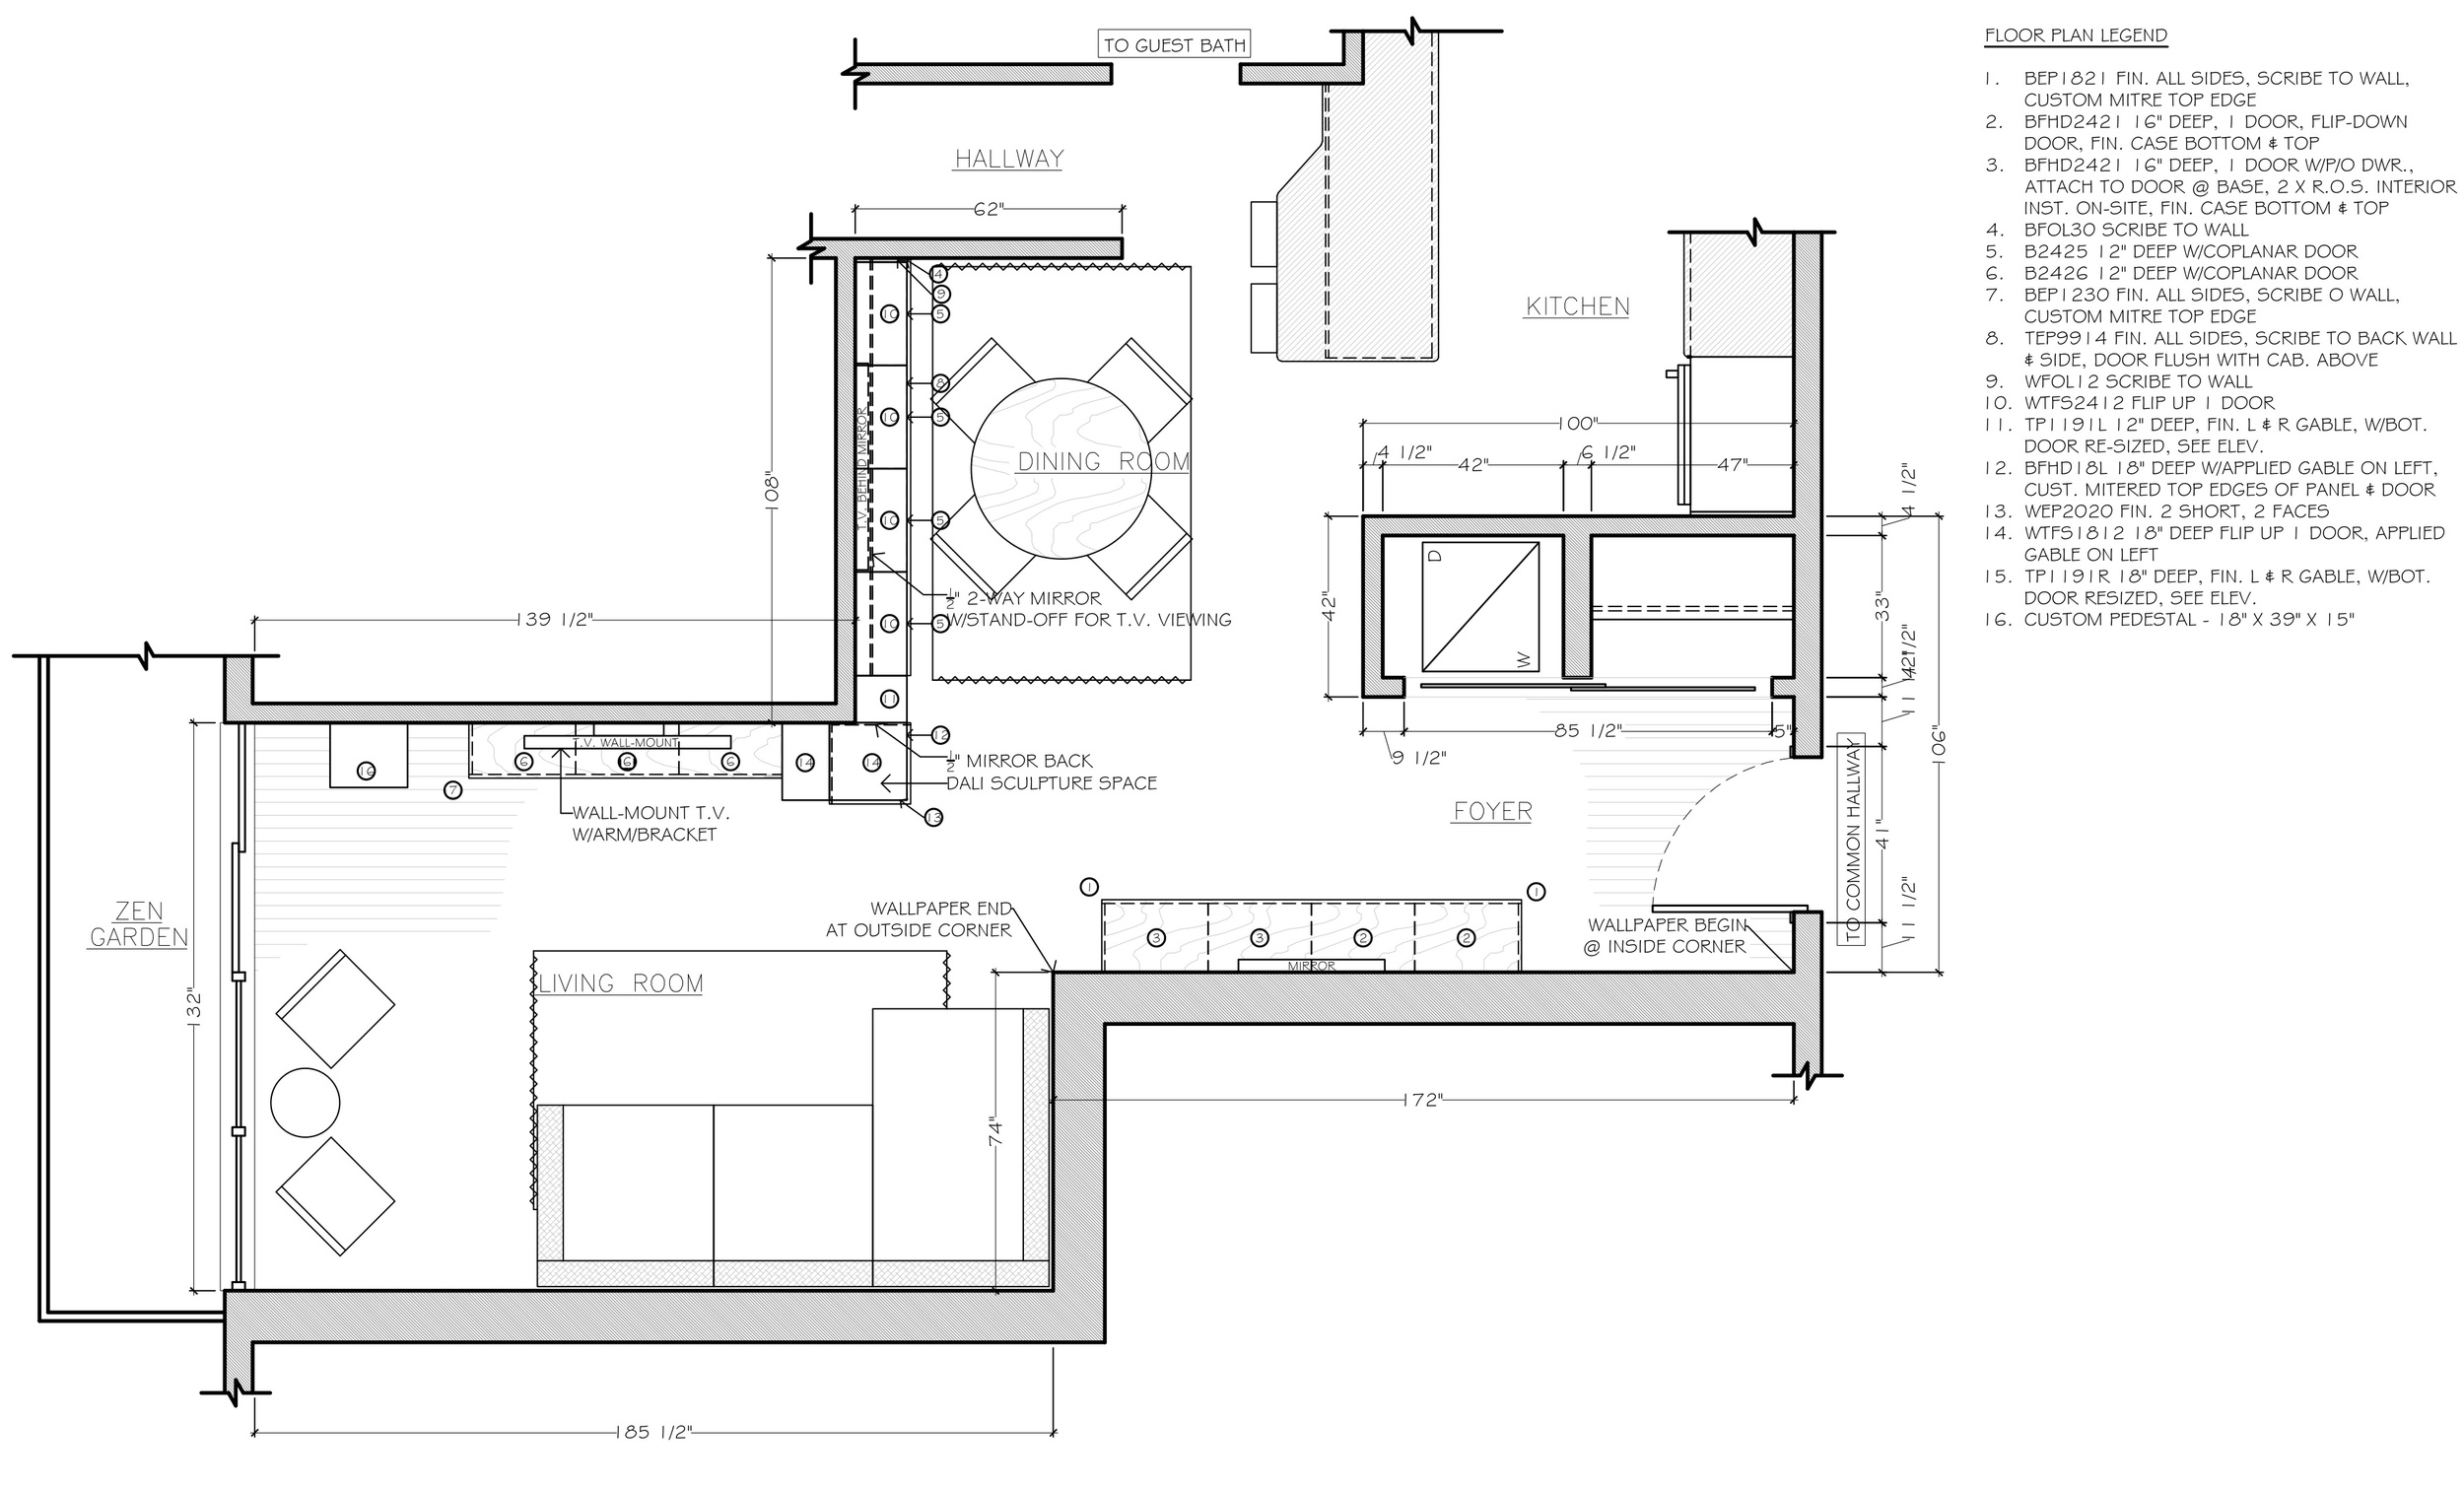 The floor plan: We are adding built-in bespoke cabinetry and adjusting the furniture plan to accommodate the PLETHORA of amazing artwork.